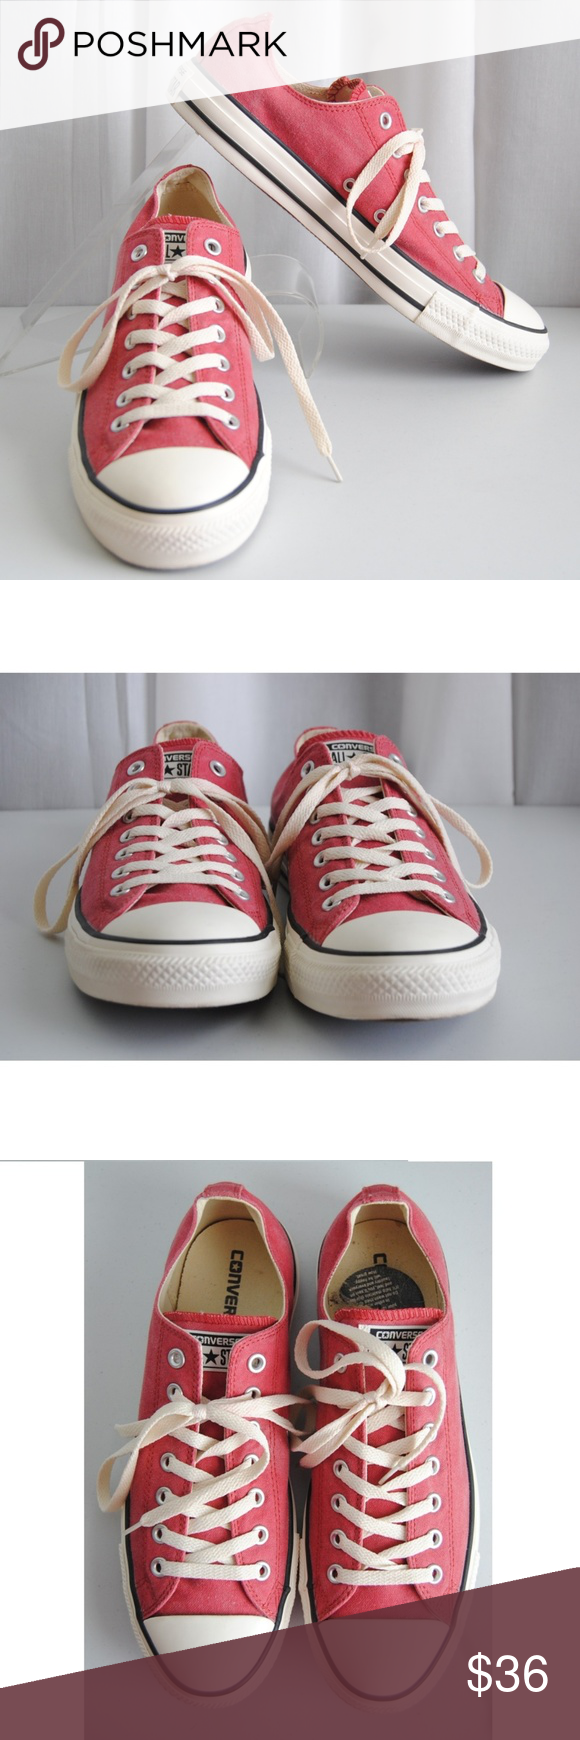 28e2034277a1 Converse Chuck Taylor All Stars-Chili Pepper Red CONVERSE CHUCK TAYLOR ALL  STAR LOW TOP